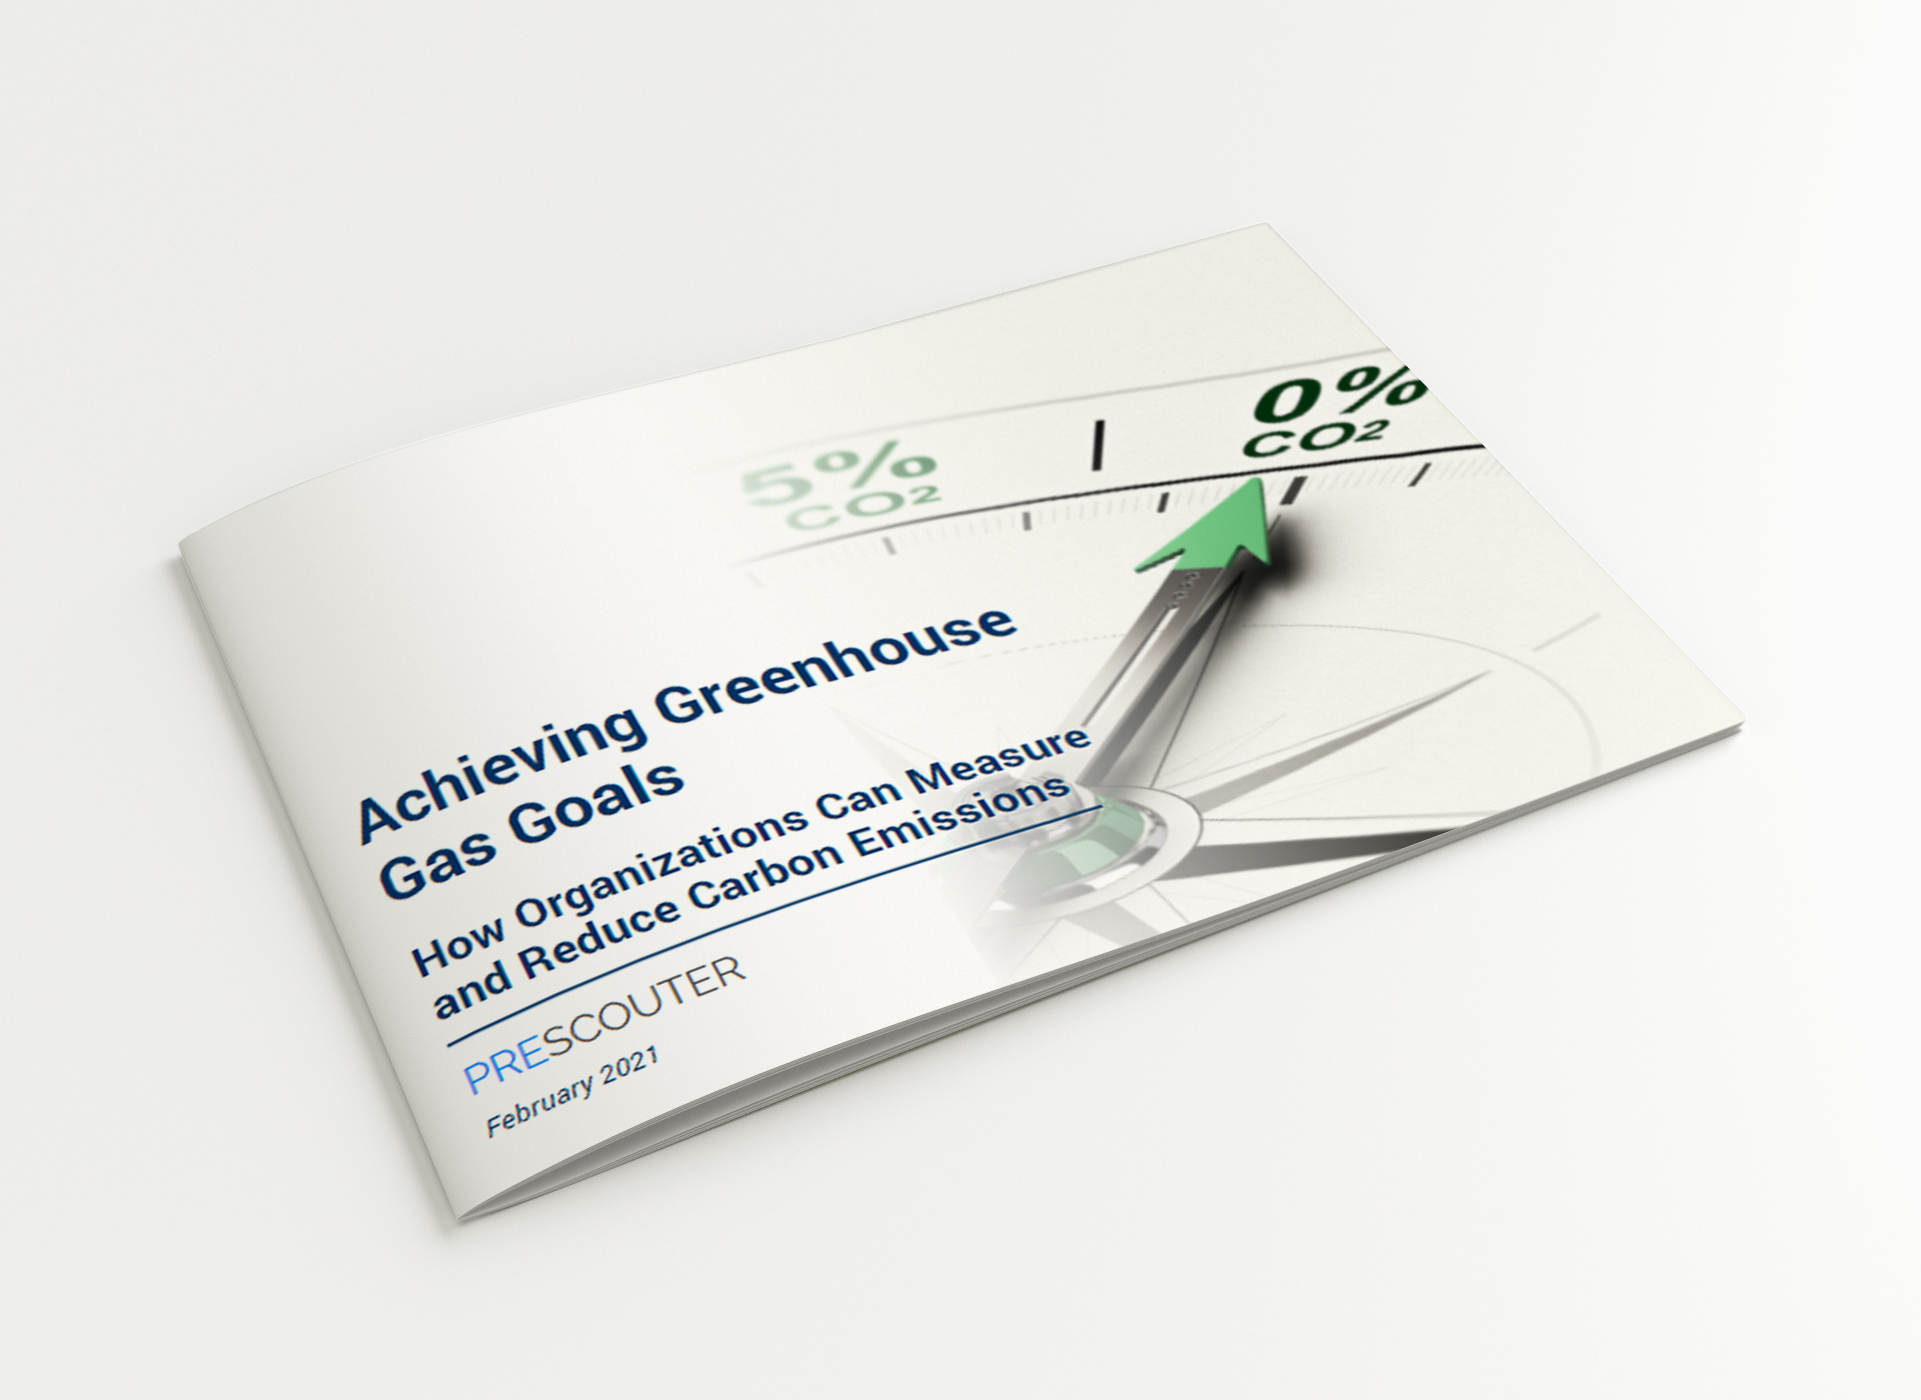 Achieving Greenhouse Gas Goals: How Organizations Can Measure and Reduce Carbon Emissions